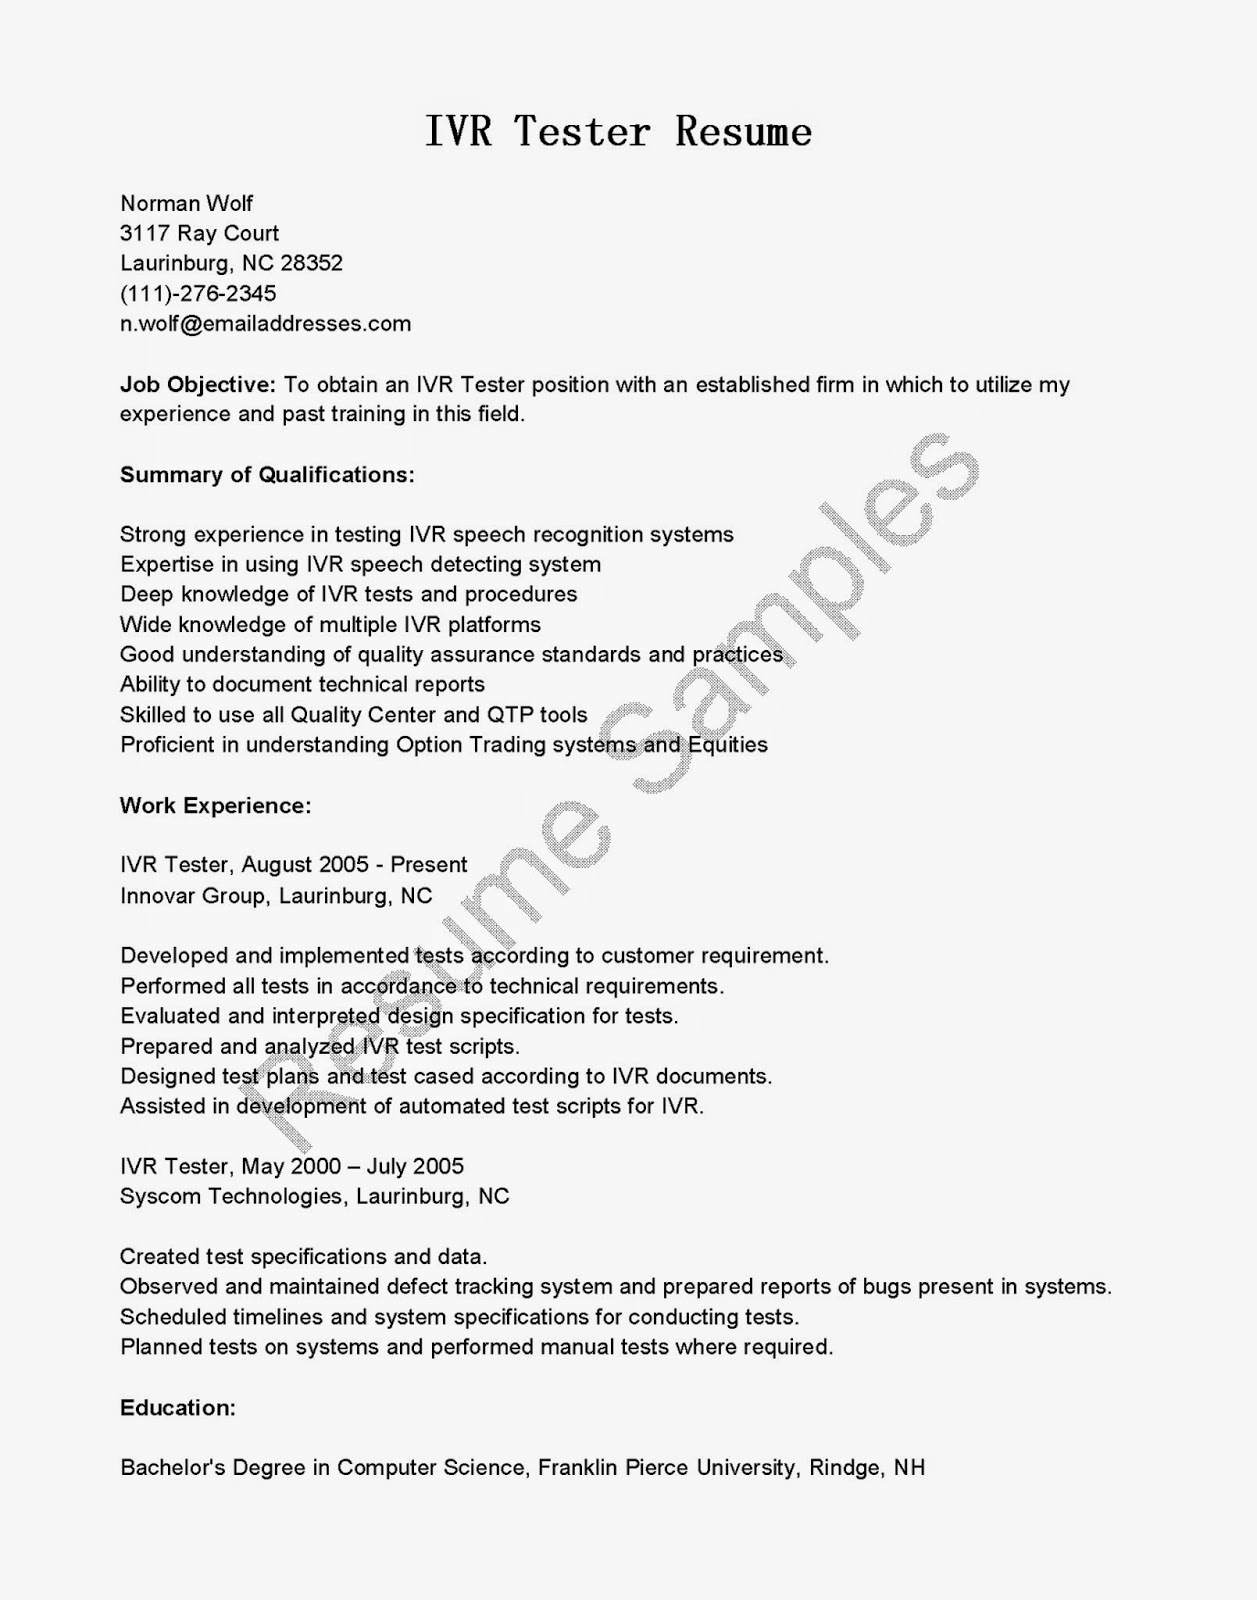 resume samples  ivr tester resume sample